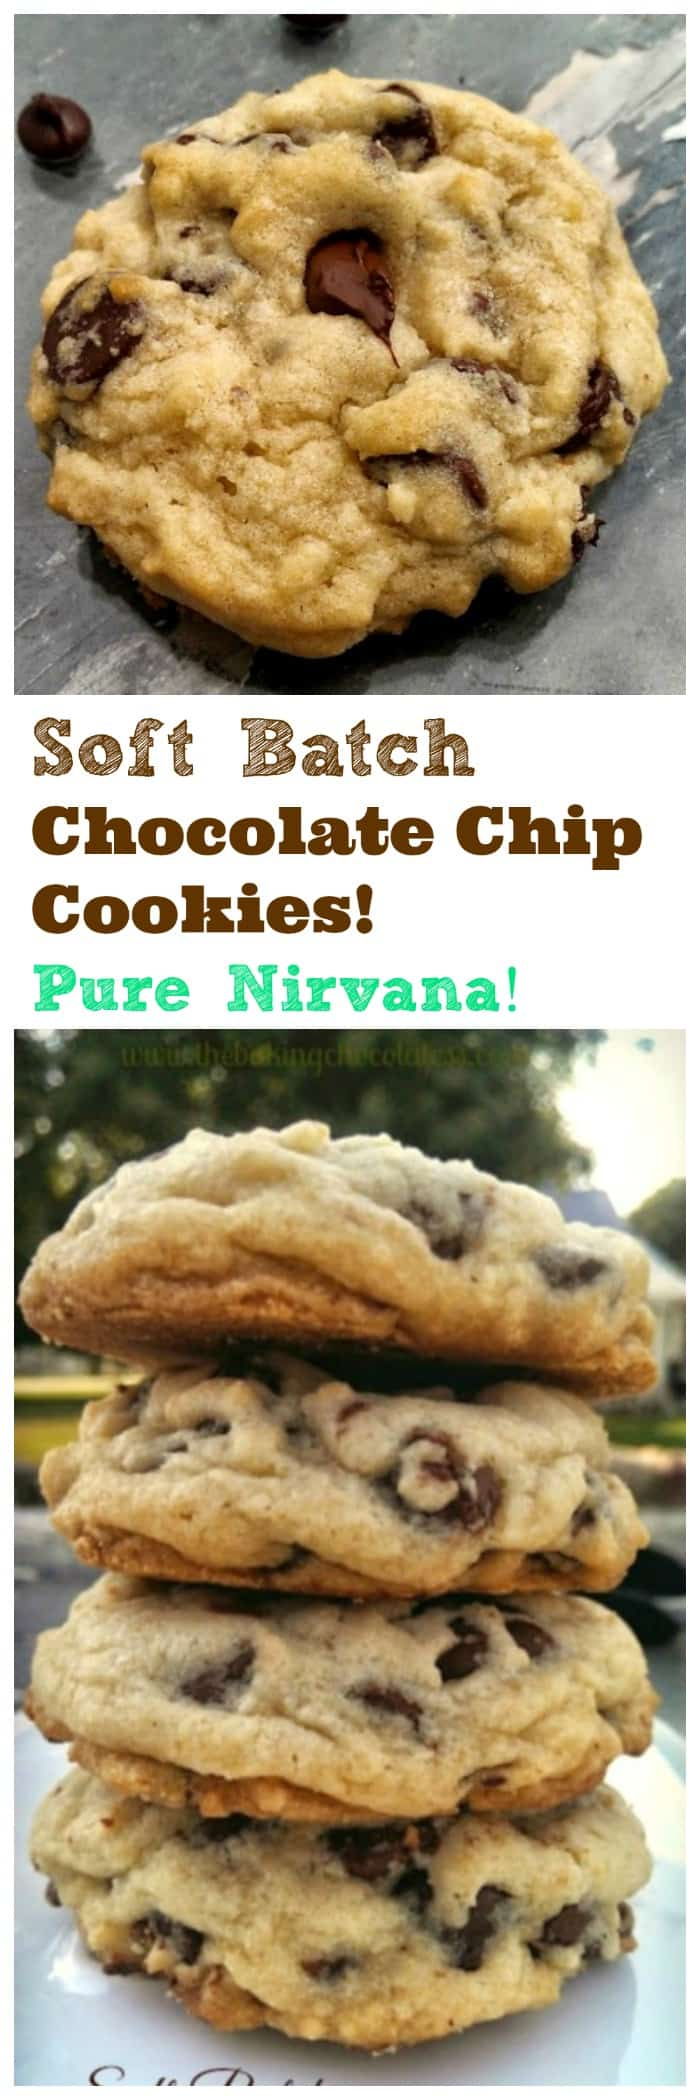 Soft Batch Chocolate Chip Cookies!  Pure Nirvana!  Delectable, insane, buttery, rich, thick, soft-batch chocolate chip cookies are pure